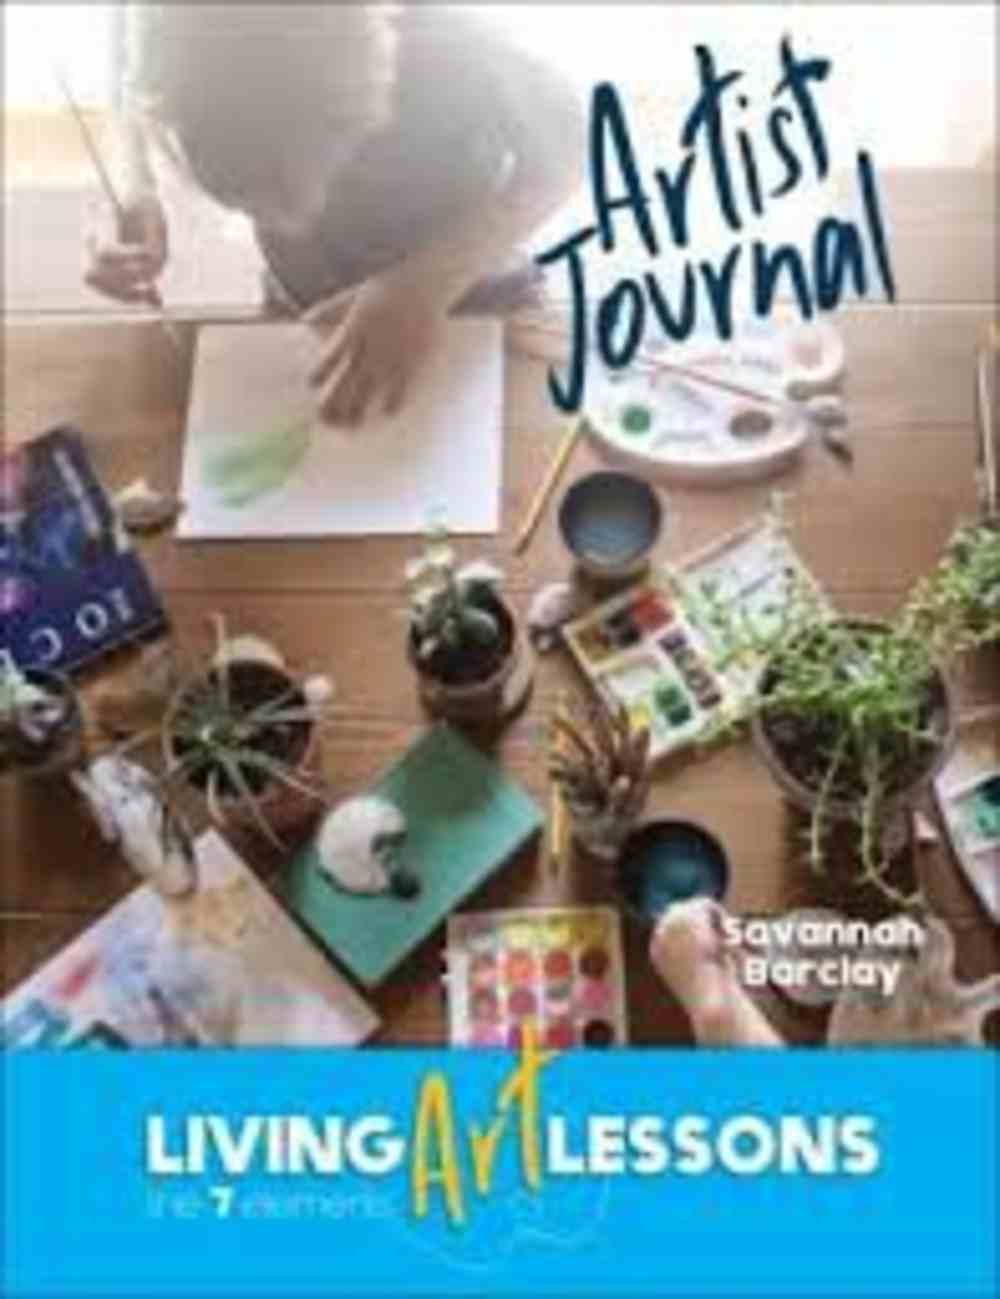 Living Art Lessons: The 7 Elements (Artist Journal) Paperback